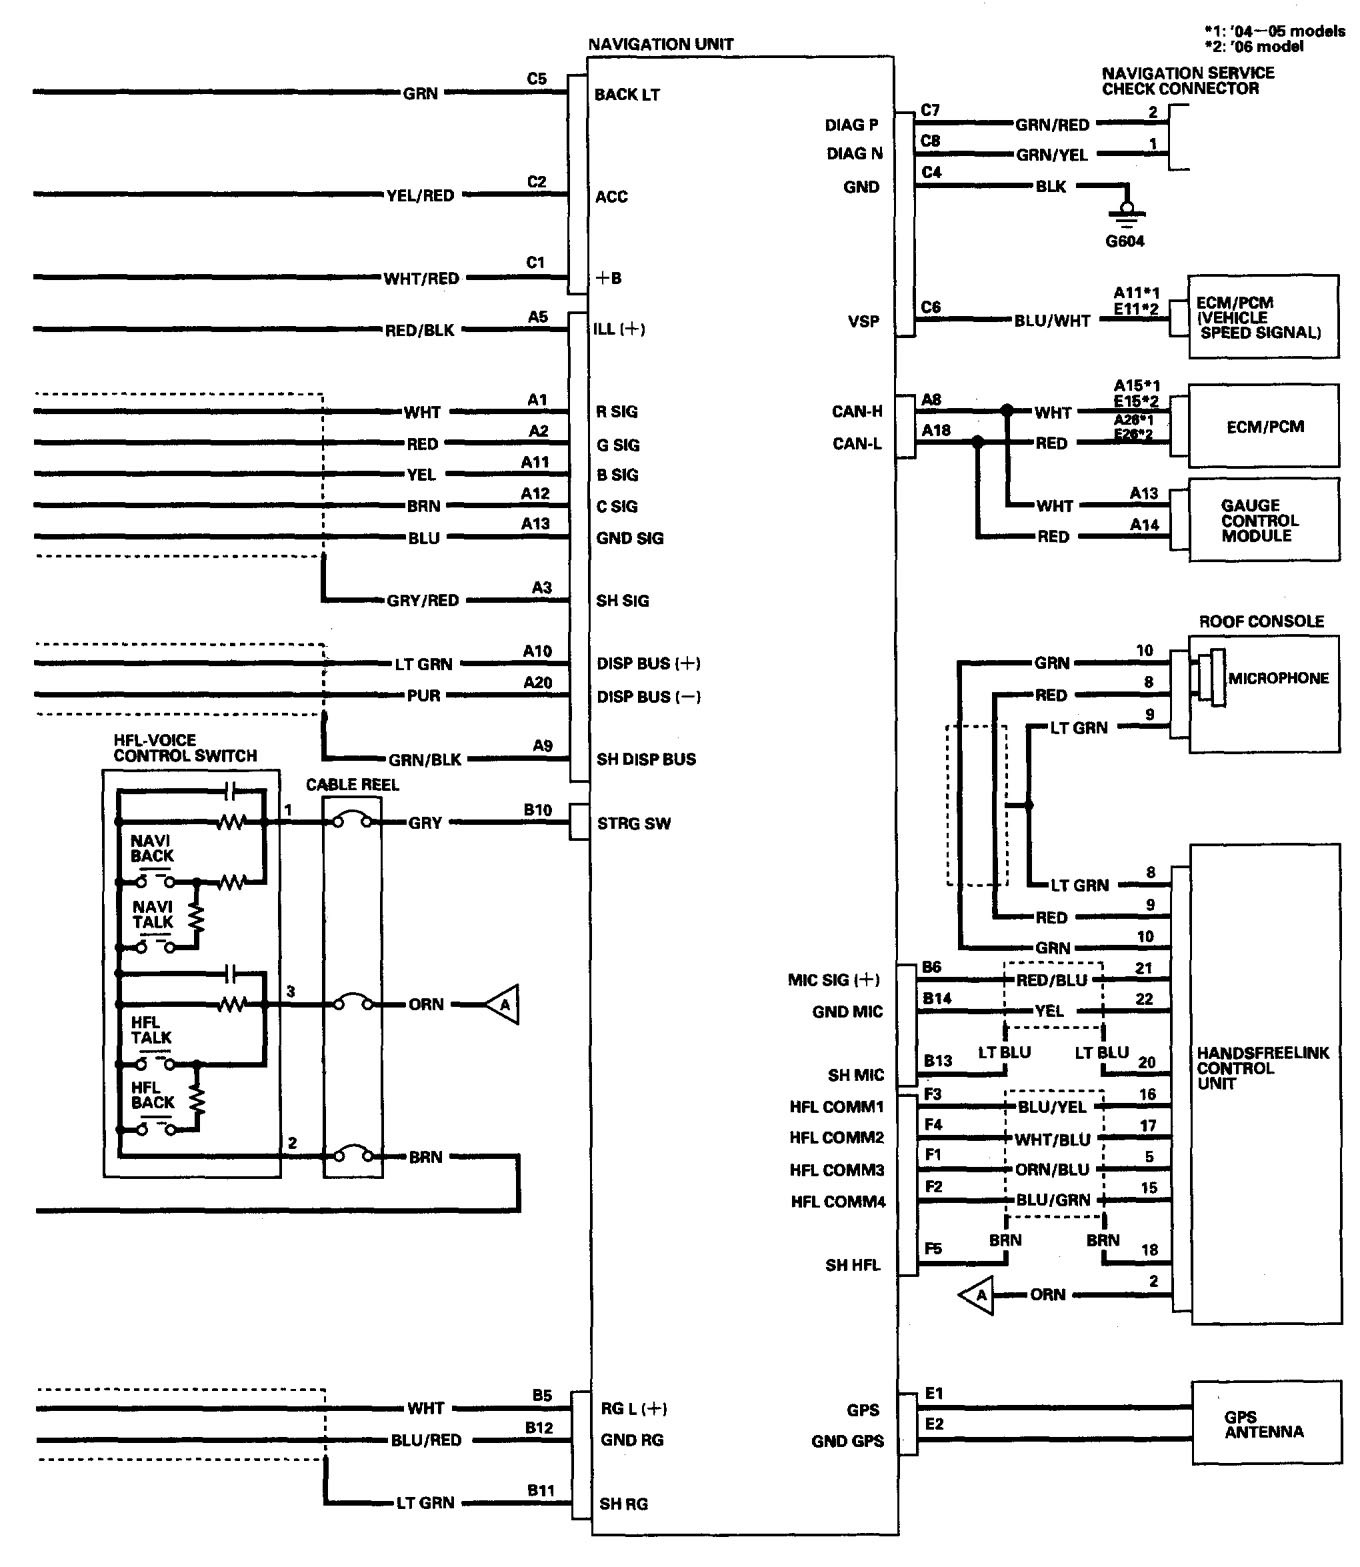 DIAGRAM] Acura Tl Navigation Wiring Diagram FULL Version HD Quality Wiring  Diagram - DIAGRAMPAL.CONSERVATOIRE-CHANTERIE.FRdiagrampal.conservatoire-chanterie.fr